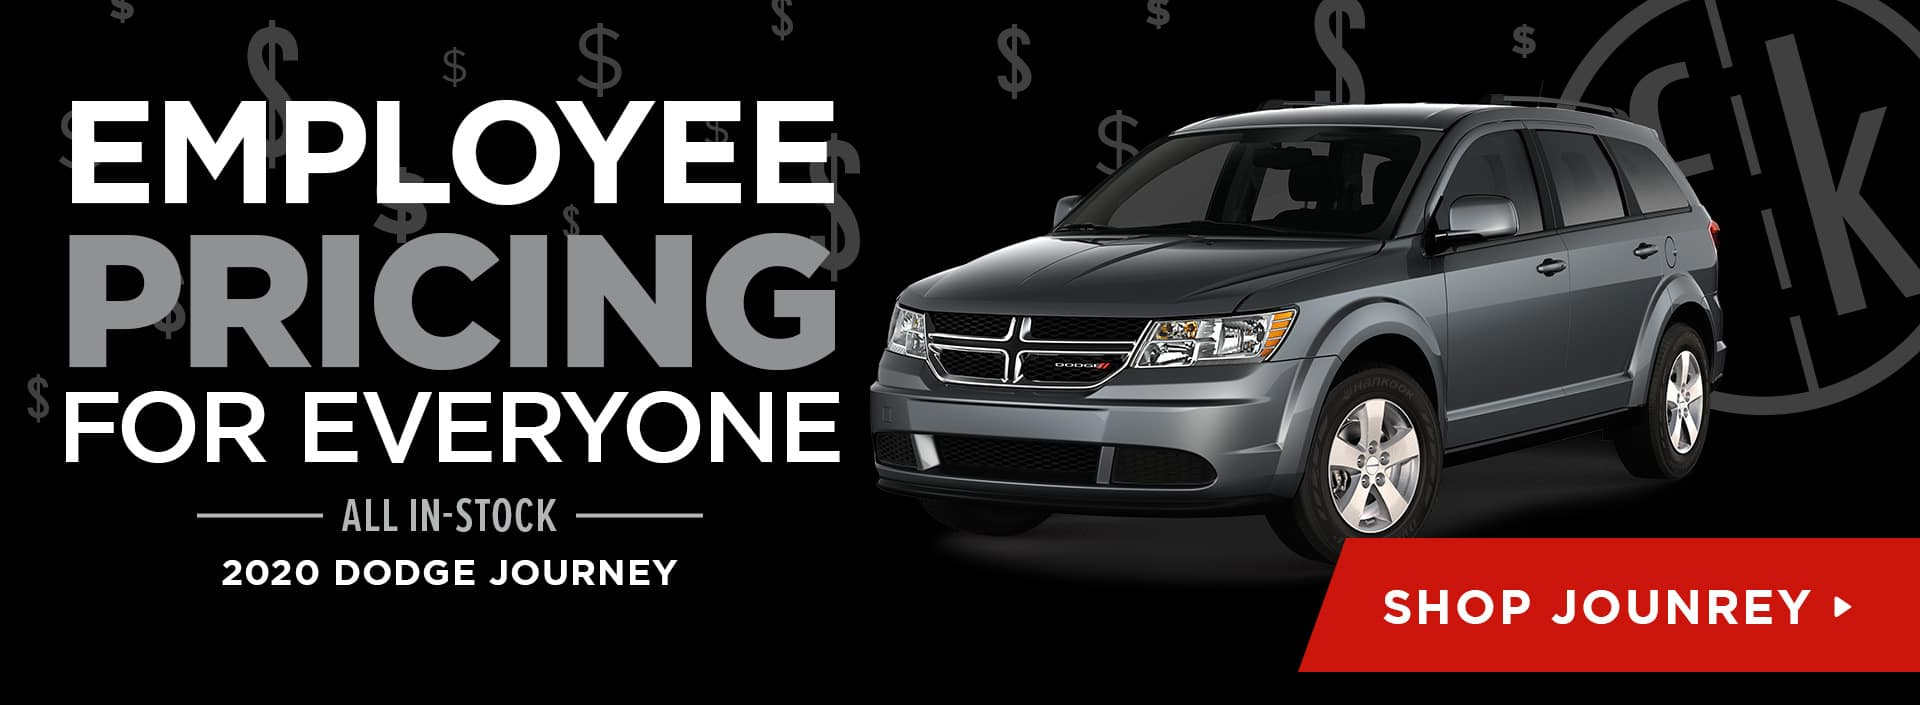 Employee Pricing All In-Stock 2020 Dodge Journey